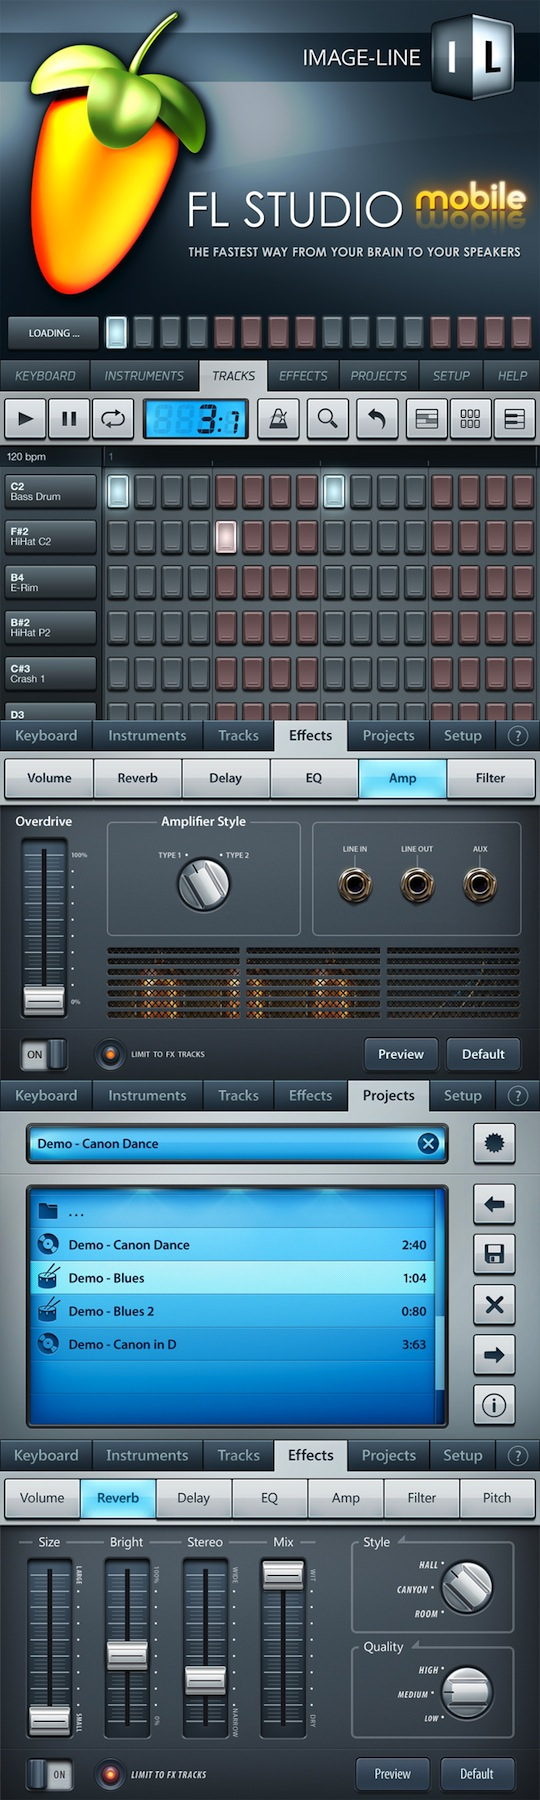 fl-studio-iphone-ipad2.jpeg